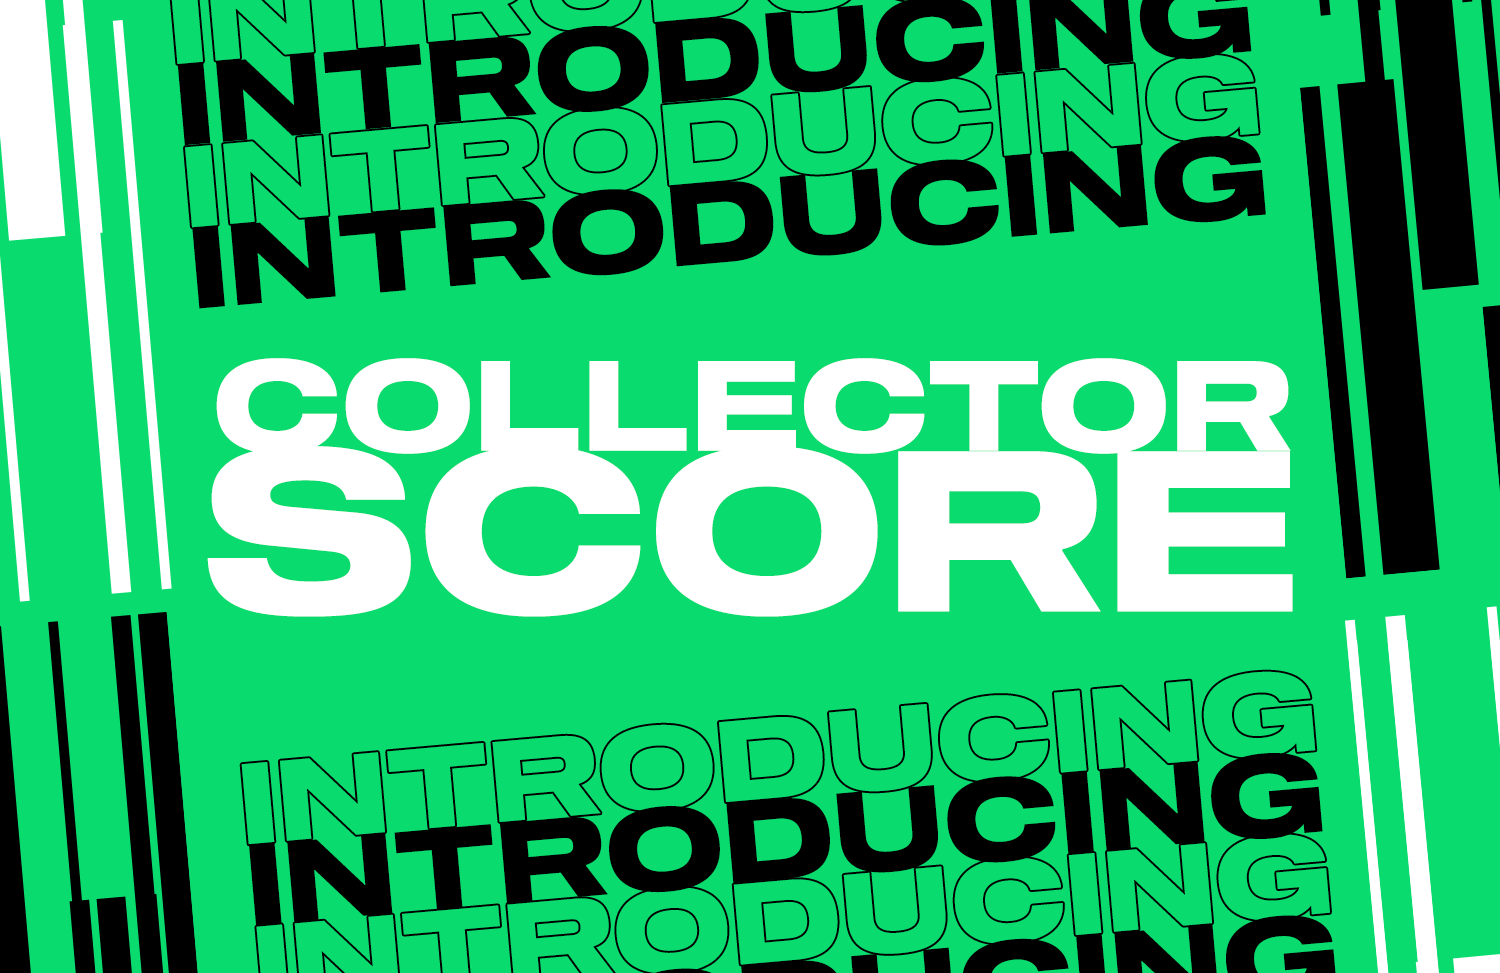 We're excited to share a new feature that we've been cooking up behind the scenes: Collector Score...